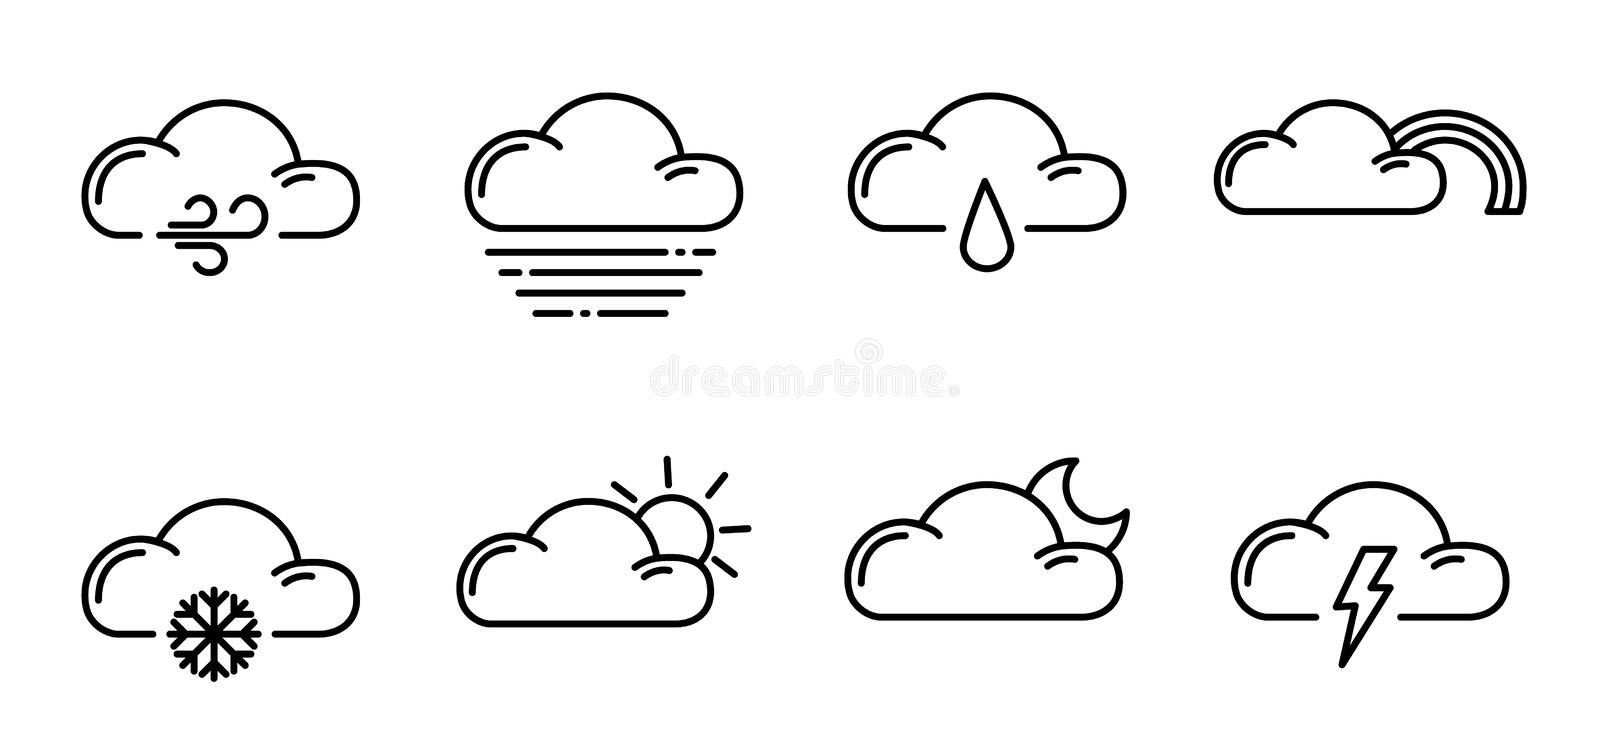 Weather Outline Icons. Set of simple outline icons - weather or forecast sings with clouds, snow, rain, fog, wind, sun and moon - vector isolated symbols royalty free illustration